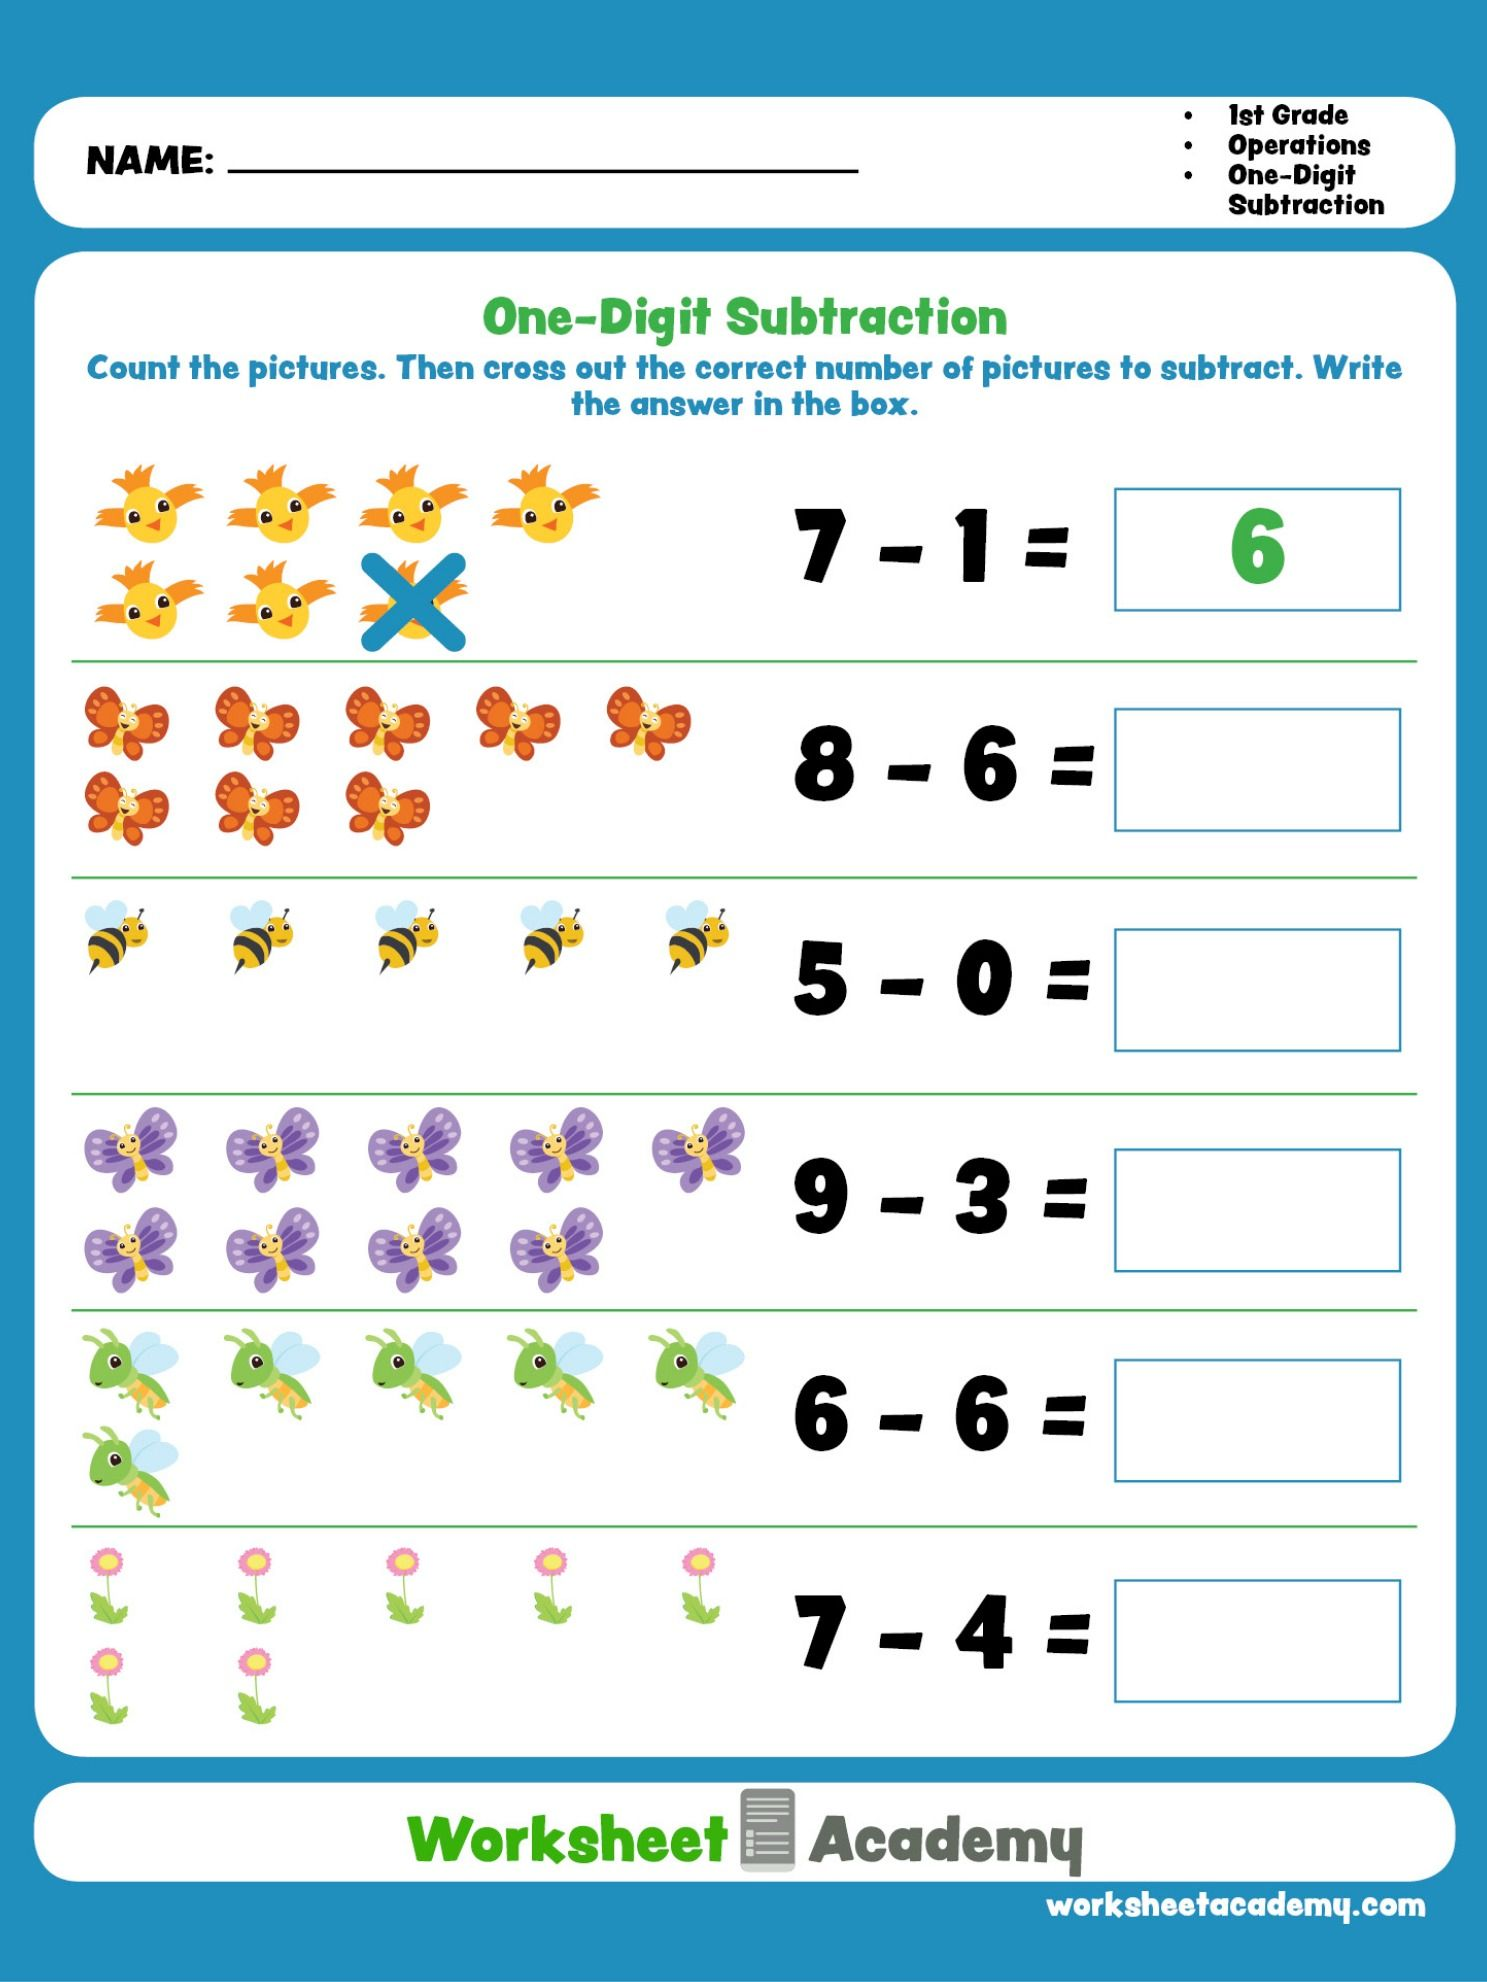 medium resolution of Education Subtraction Worksheets   Printable Worksheets and Activities for  Teachers